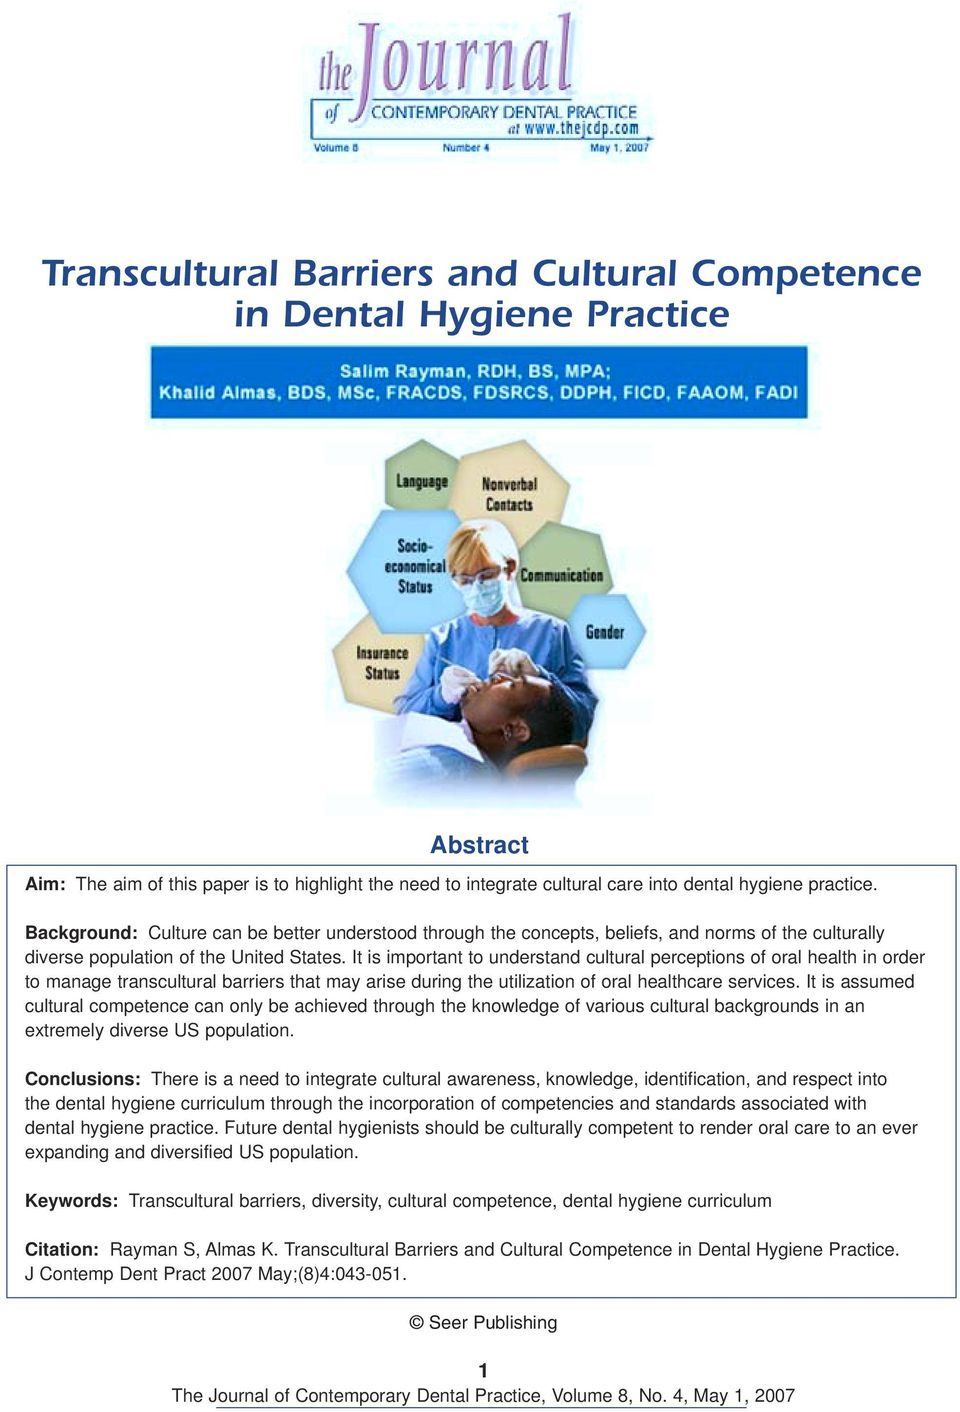 transcultural barriers and cultural competence in dental